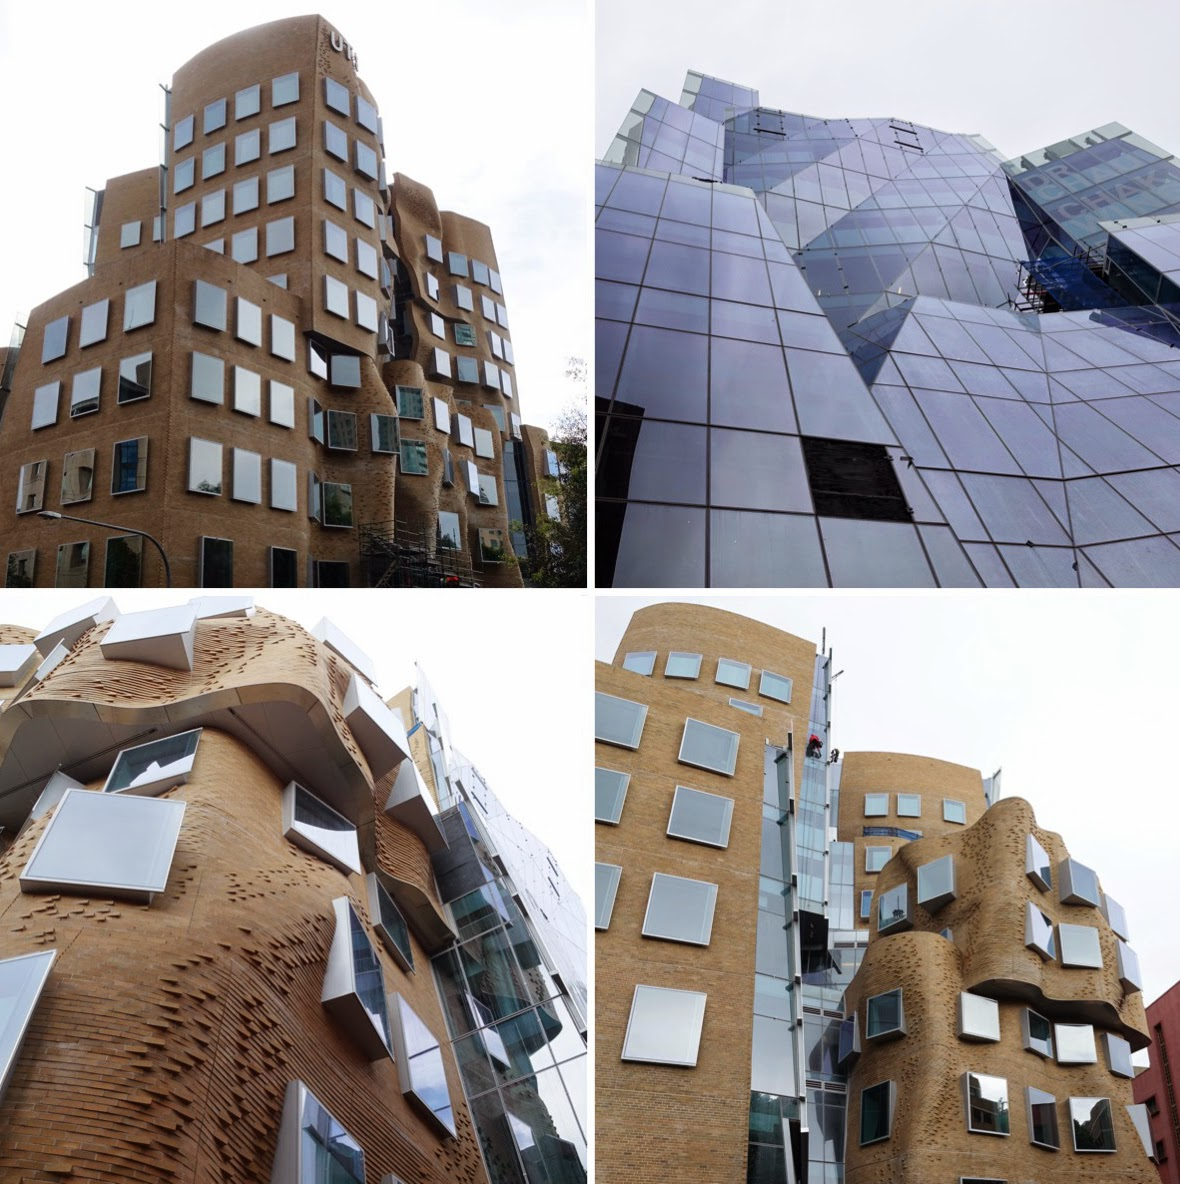 Paper bag building -  Is The Brickwork That Has Been Used For Gehry S Typical Double Curative Crazy Walls The Building Has Been Labelled The Crumpled Brown Paper Bag And